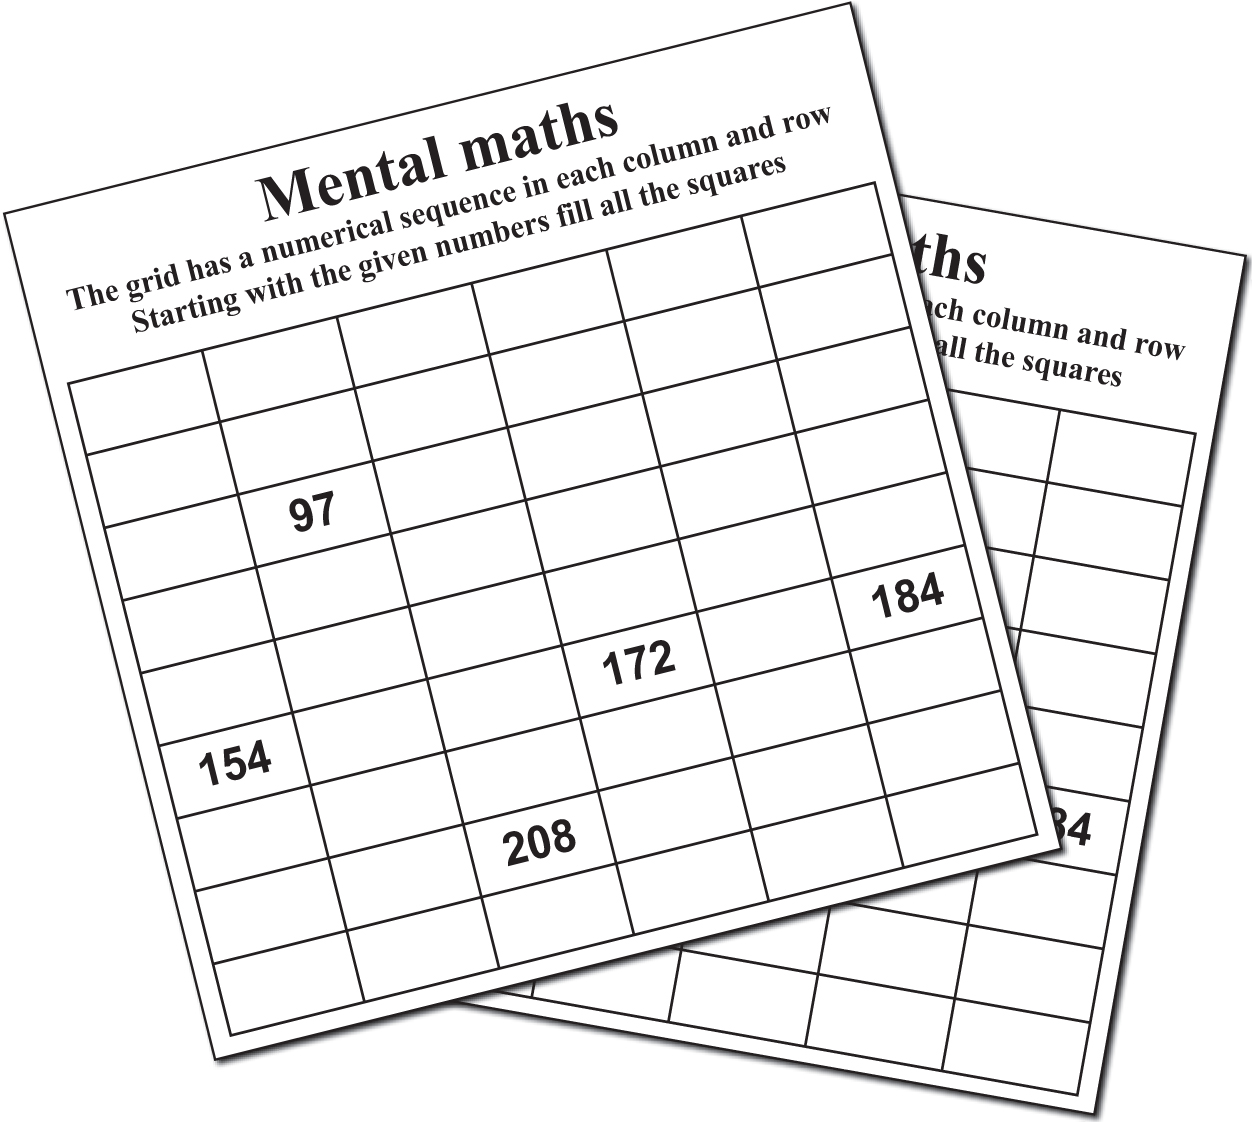 Thumbnail for 20 MENTAL MATHS PUZZLE BOOKLET 01